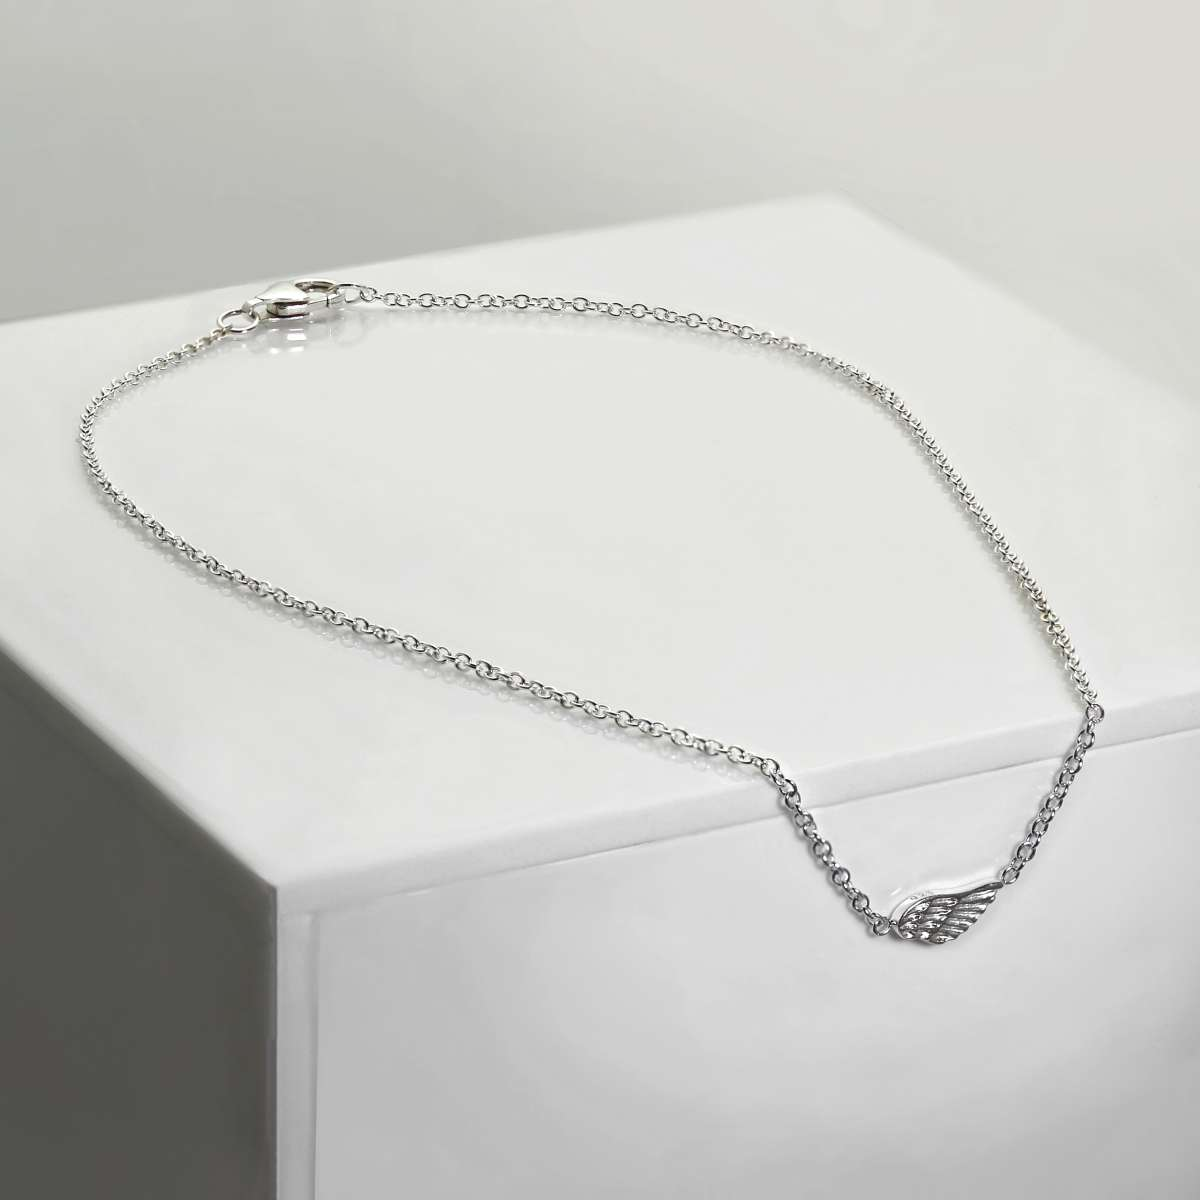 Alterative image for Fine Sterling Silver Anklet with Small Angel Wing